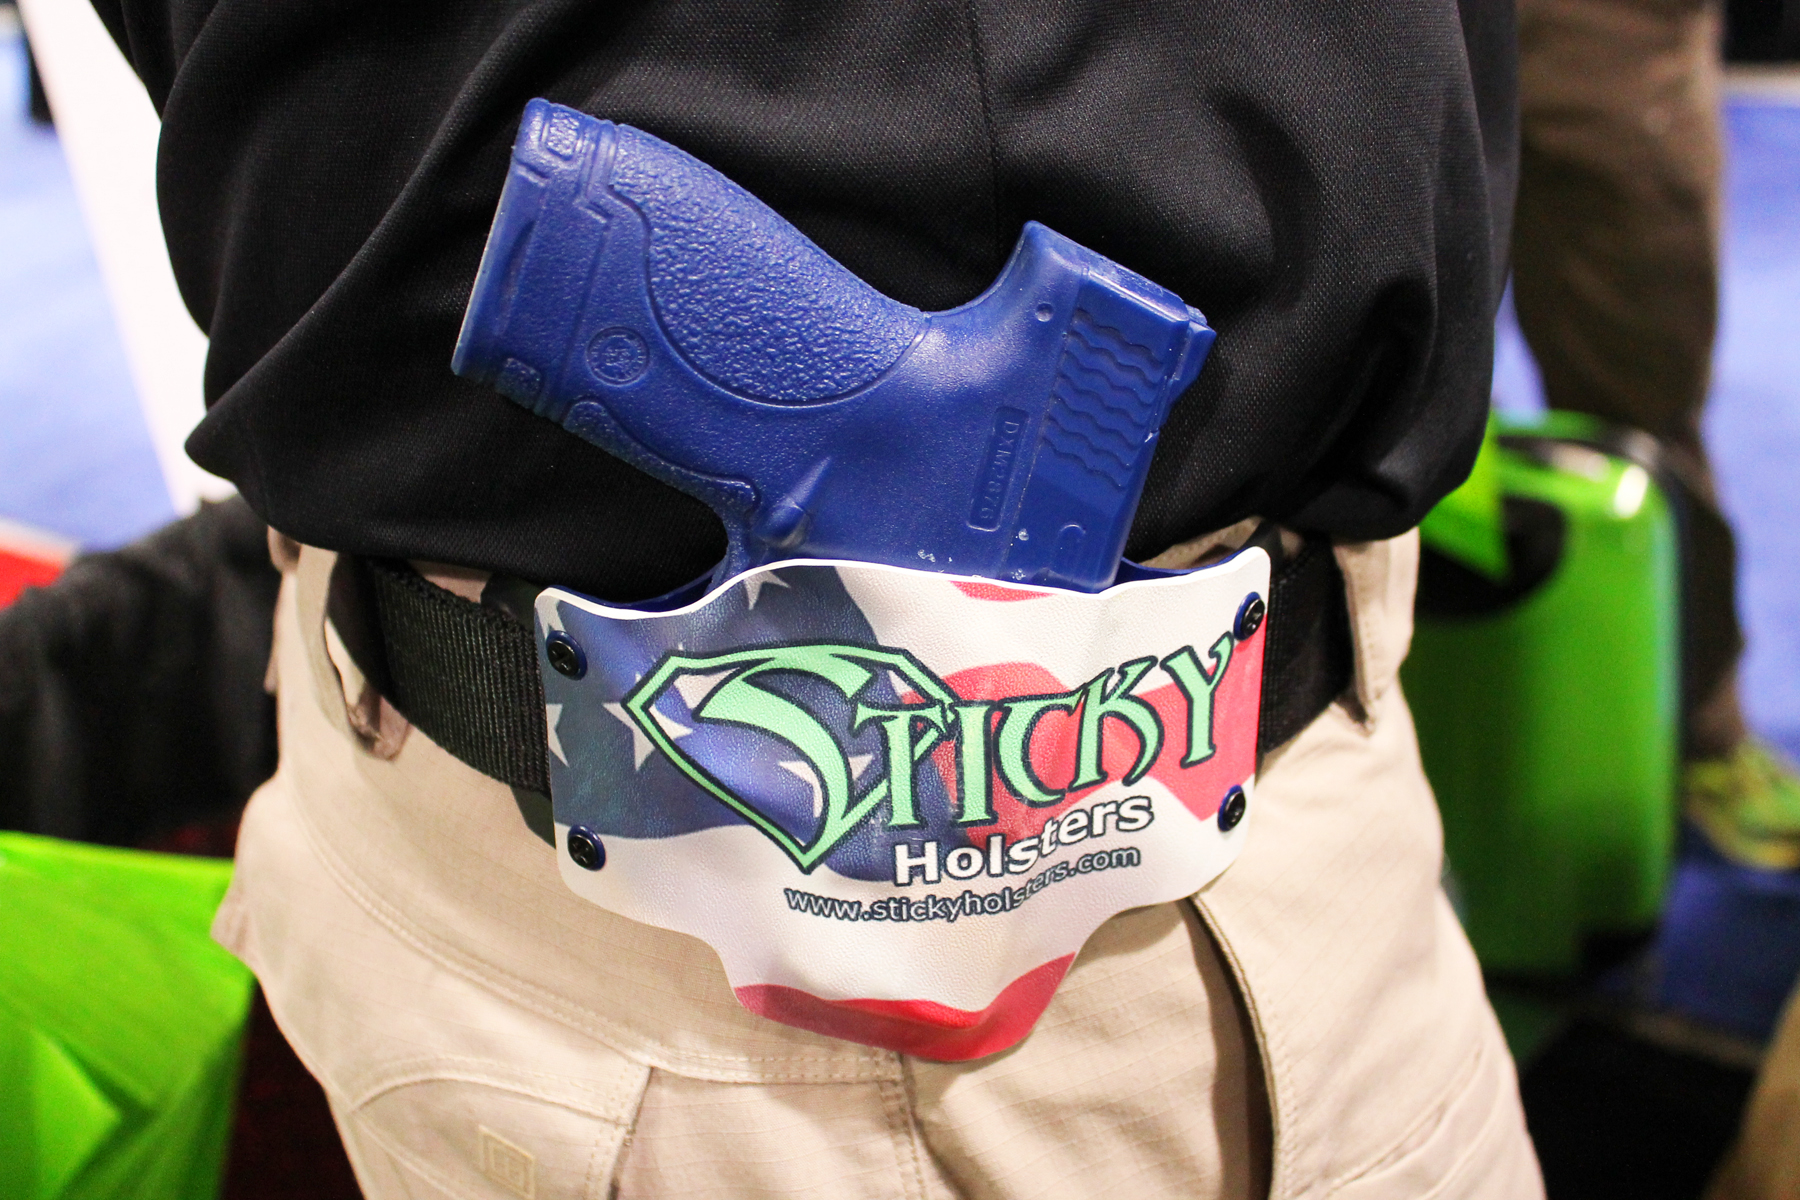 Sticky Holsters RWB